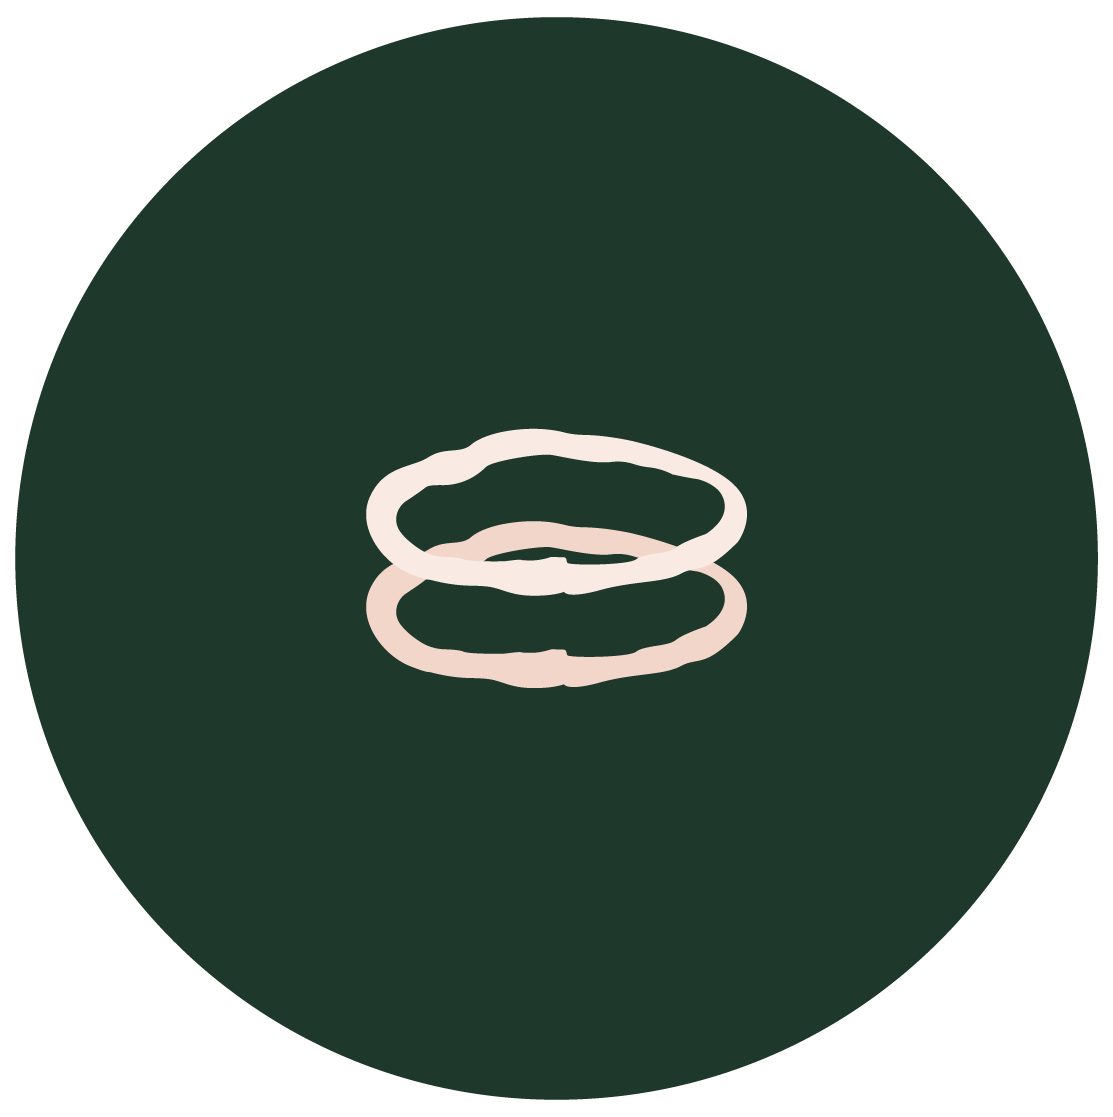 illustration of two Stem Stacking Rings on green circle background